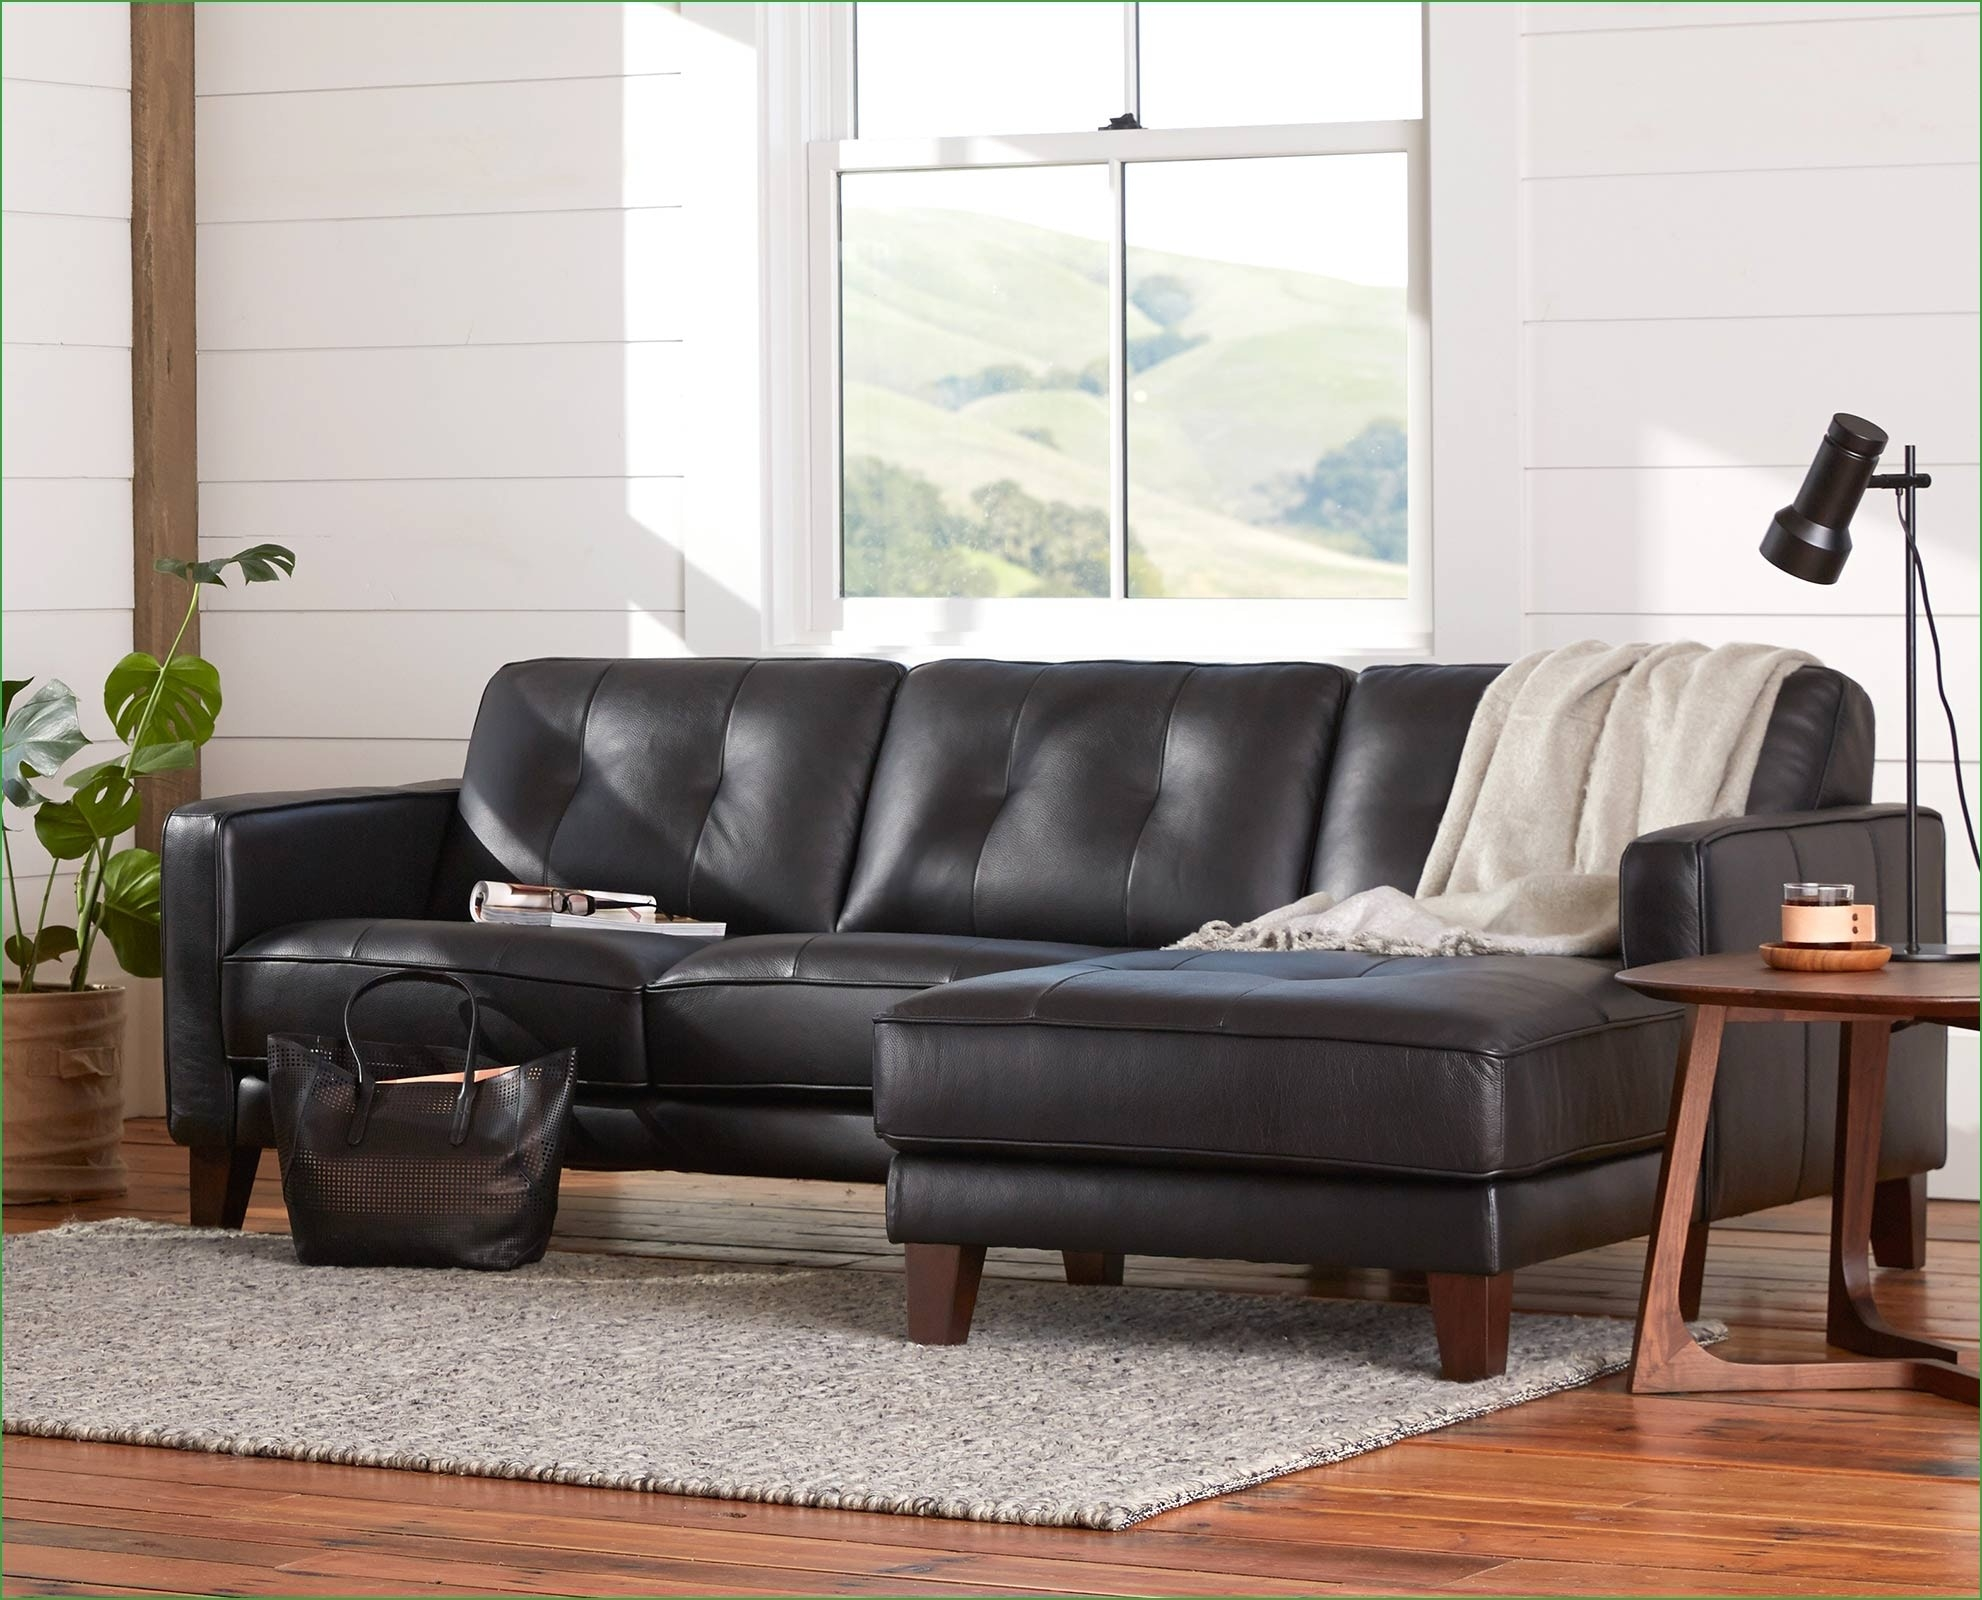 Image Result For Bentley Sectional Leather Sofa Havertys Havertys Pertaining To Bentley Sectional Leather Sofa ( : havertys bentley sectional - Sectionals, Sofas & Couches